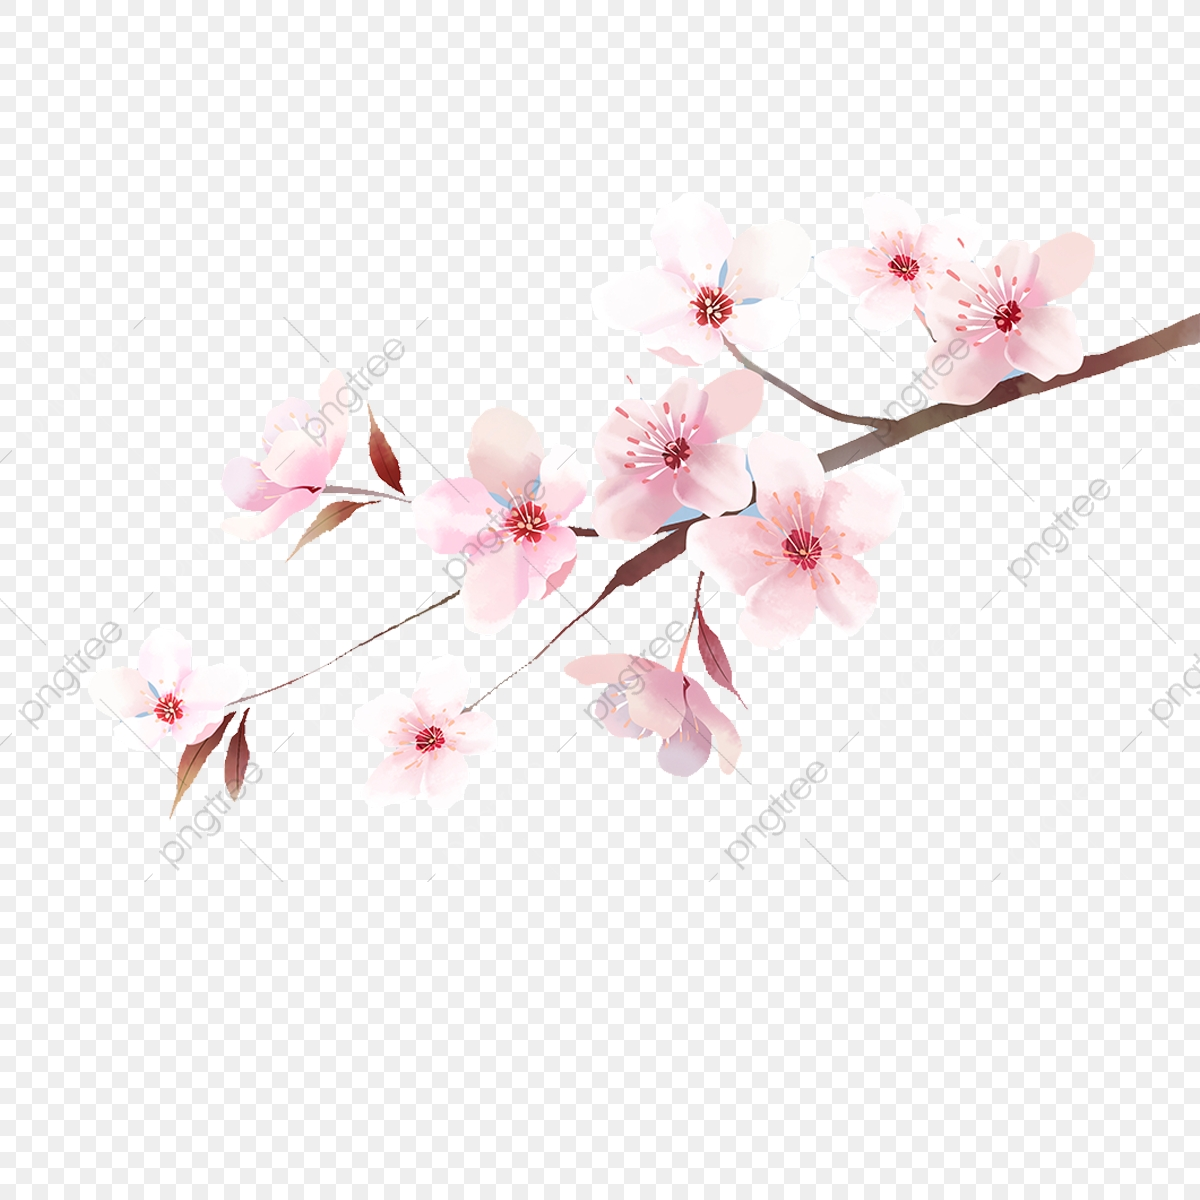 Japanese clipart japan cherry blossom. The illustrations of blossoms